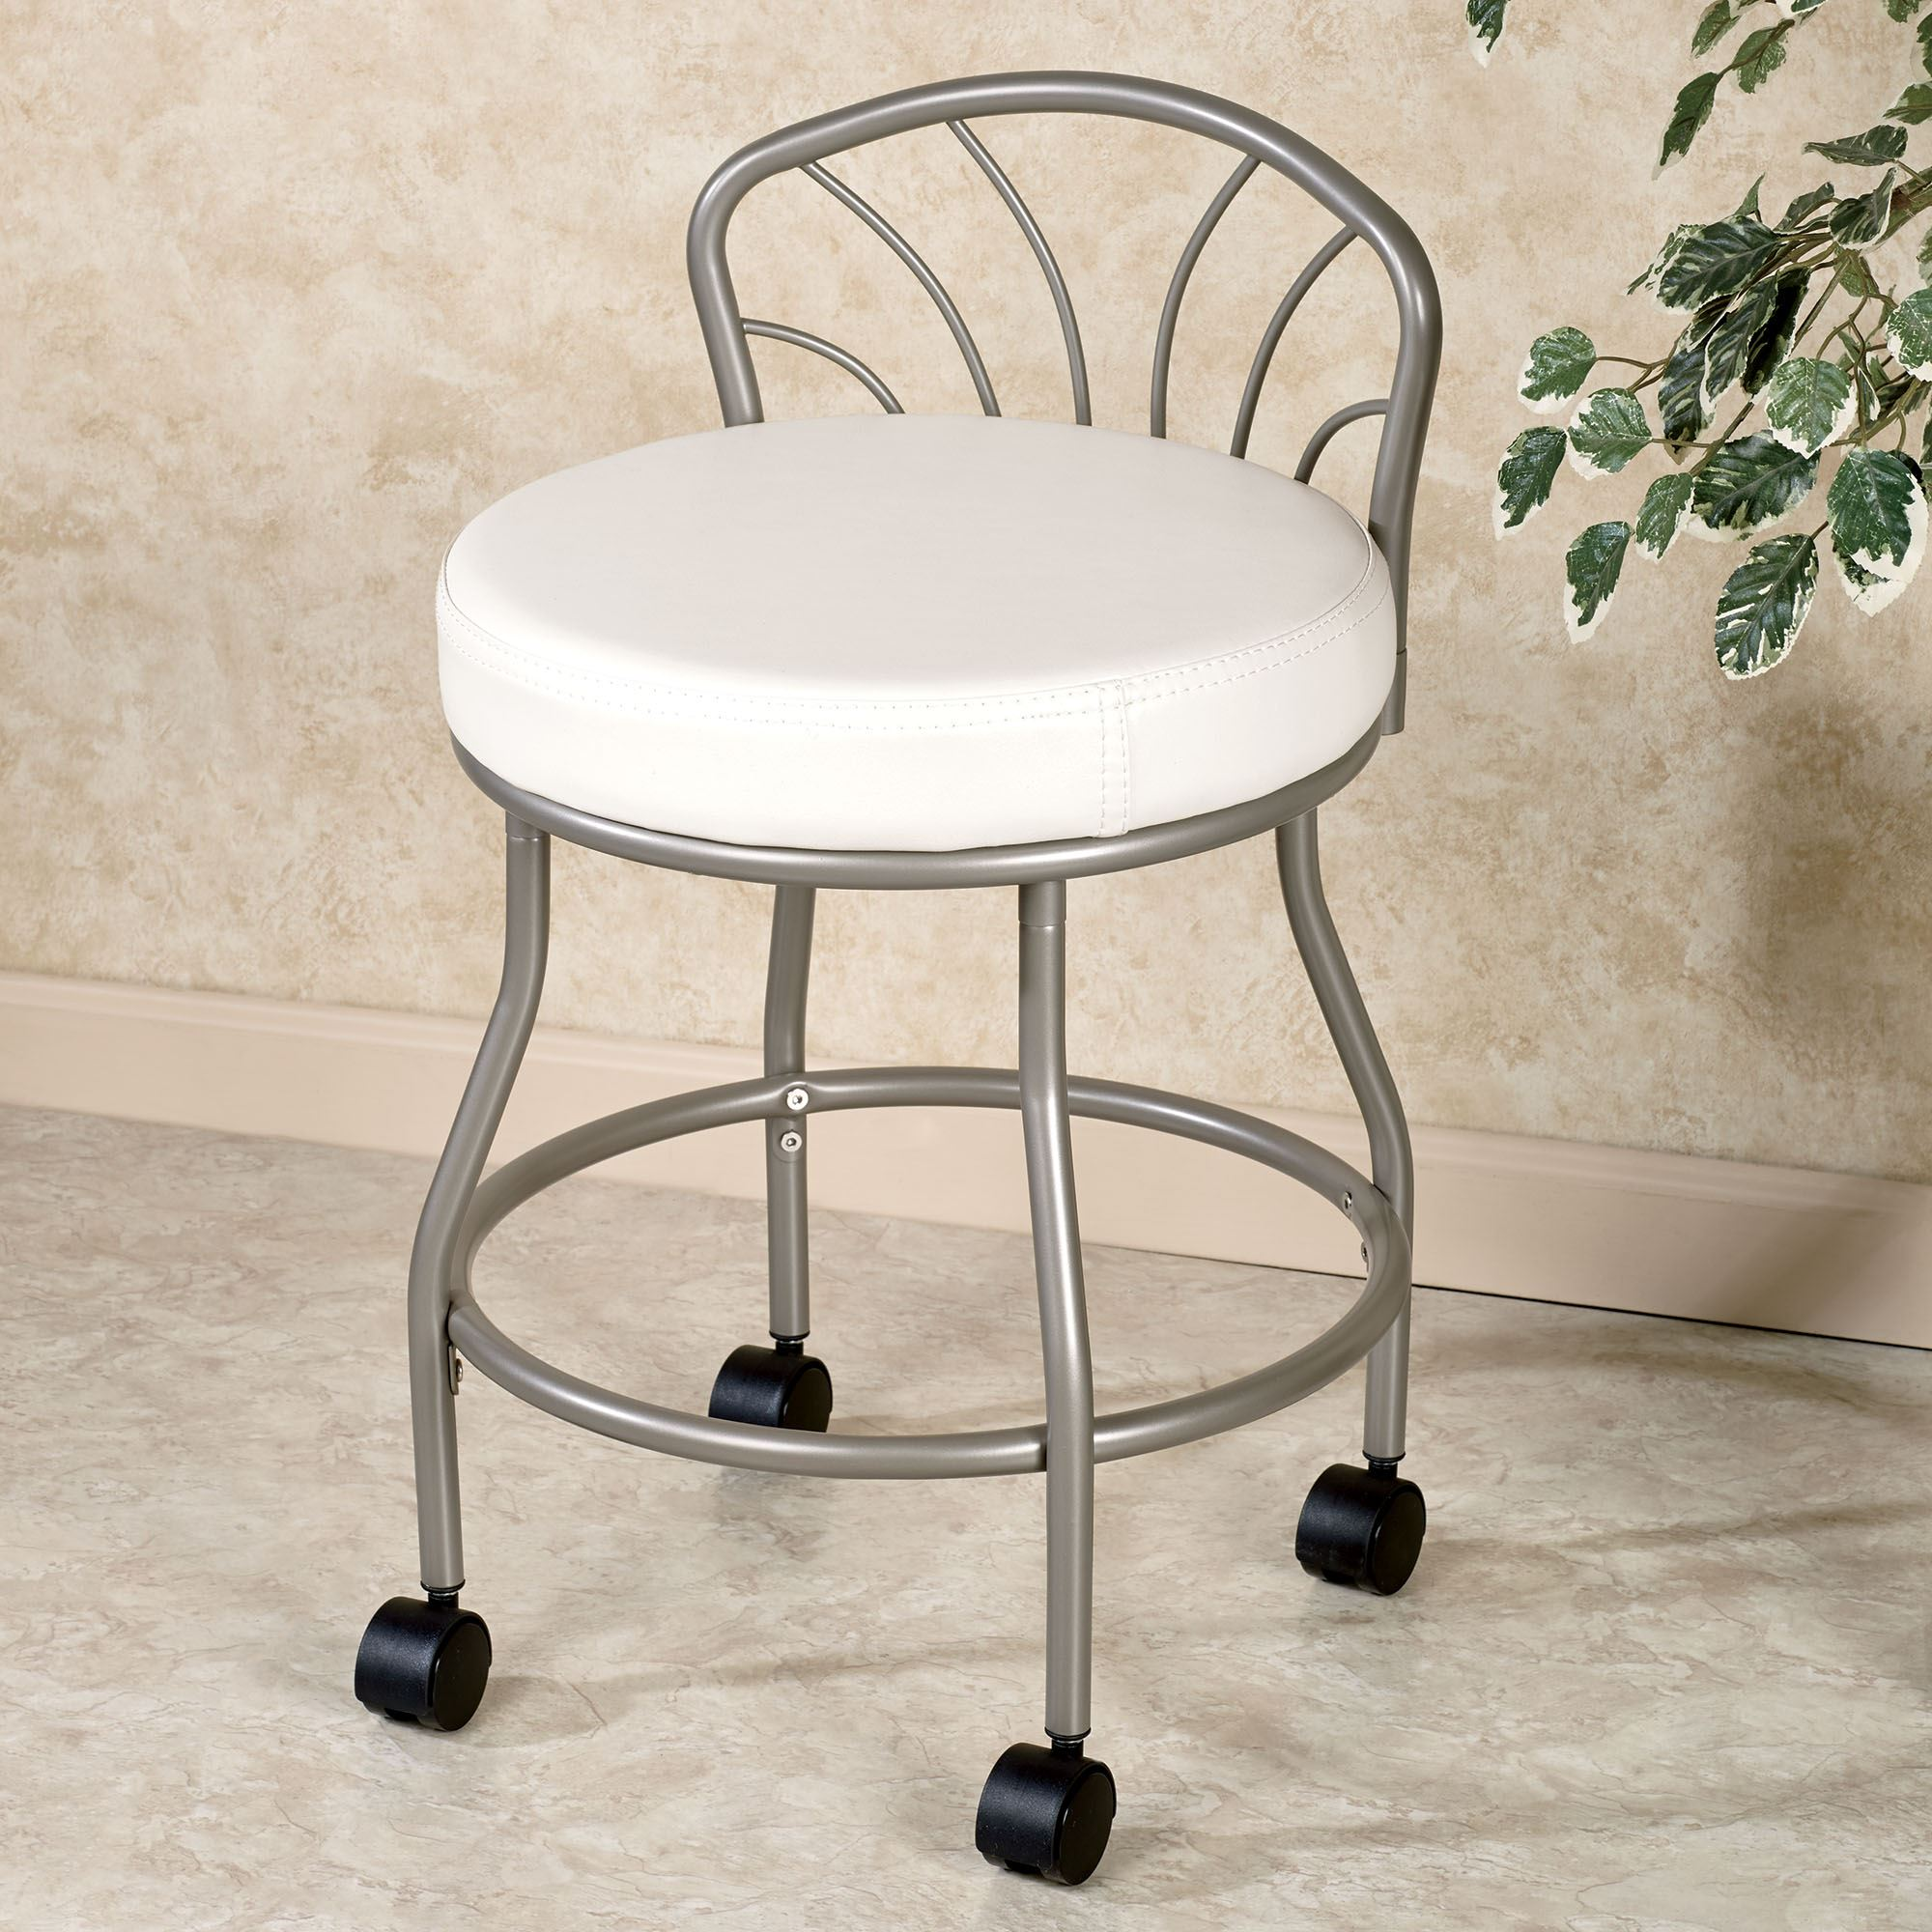 vanity chairs with back hanging chair indoor flare powder coat nickel finish casters touch to zoom